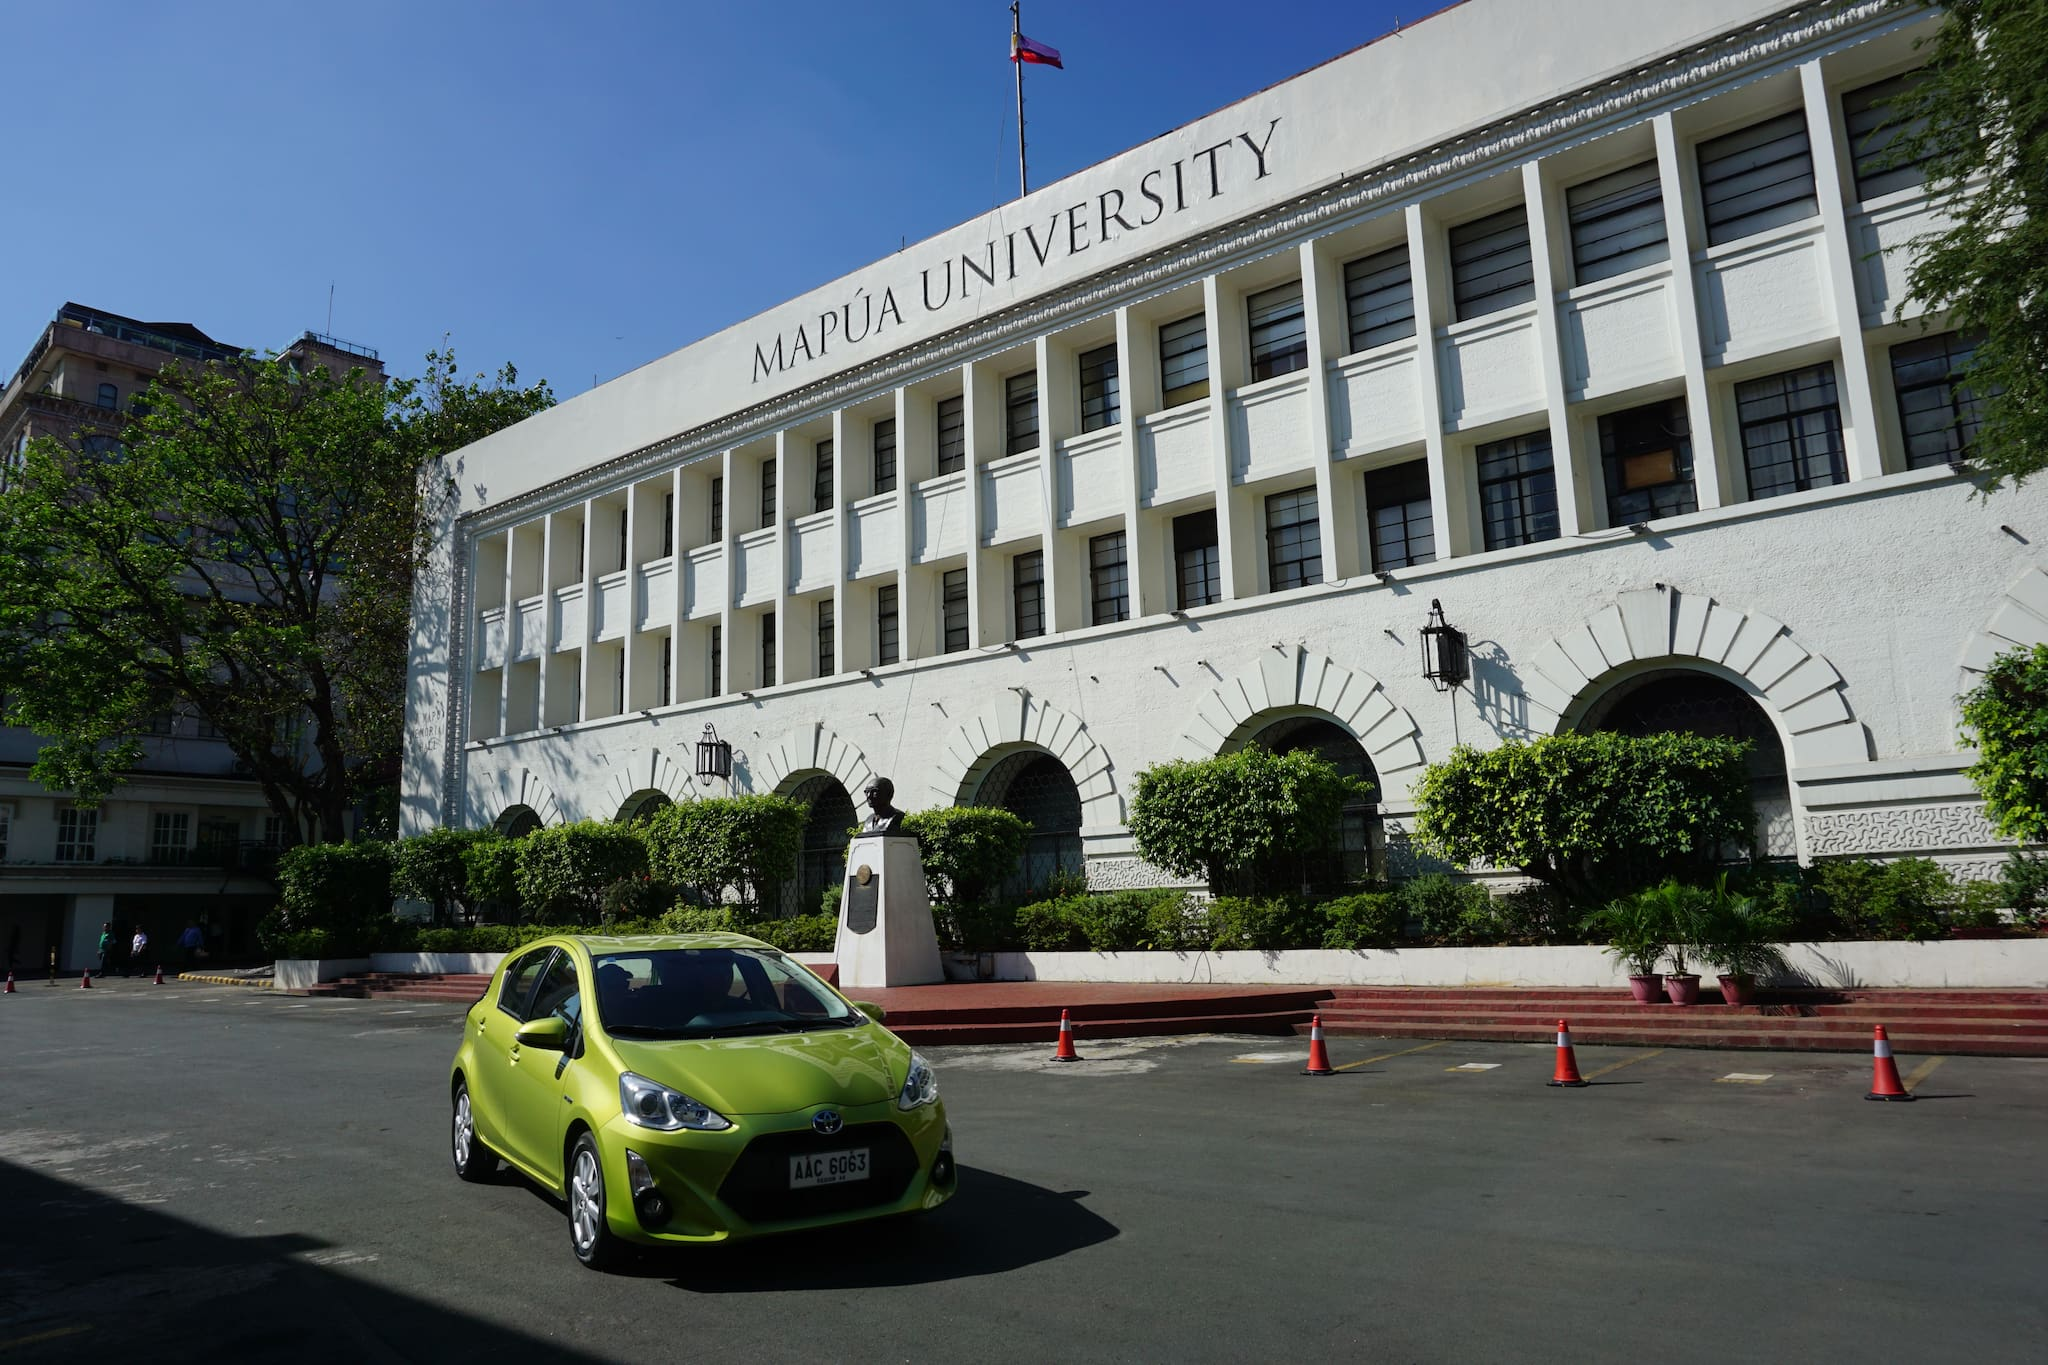 Toyota Partners with MAPUA for First Hybrid Electric Vehicle Campus Tour